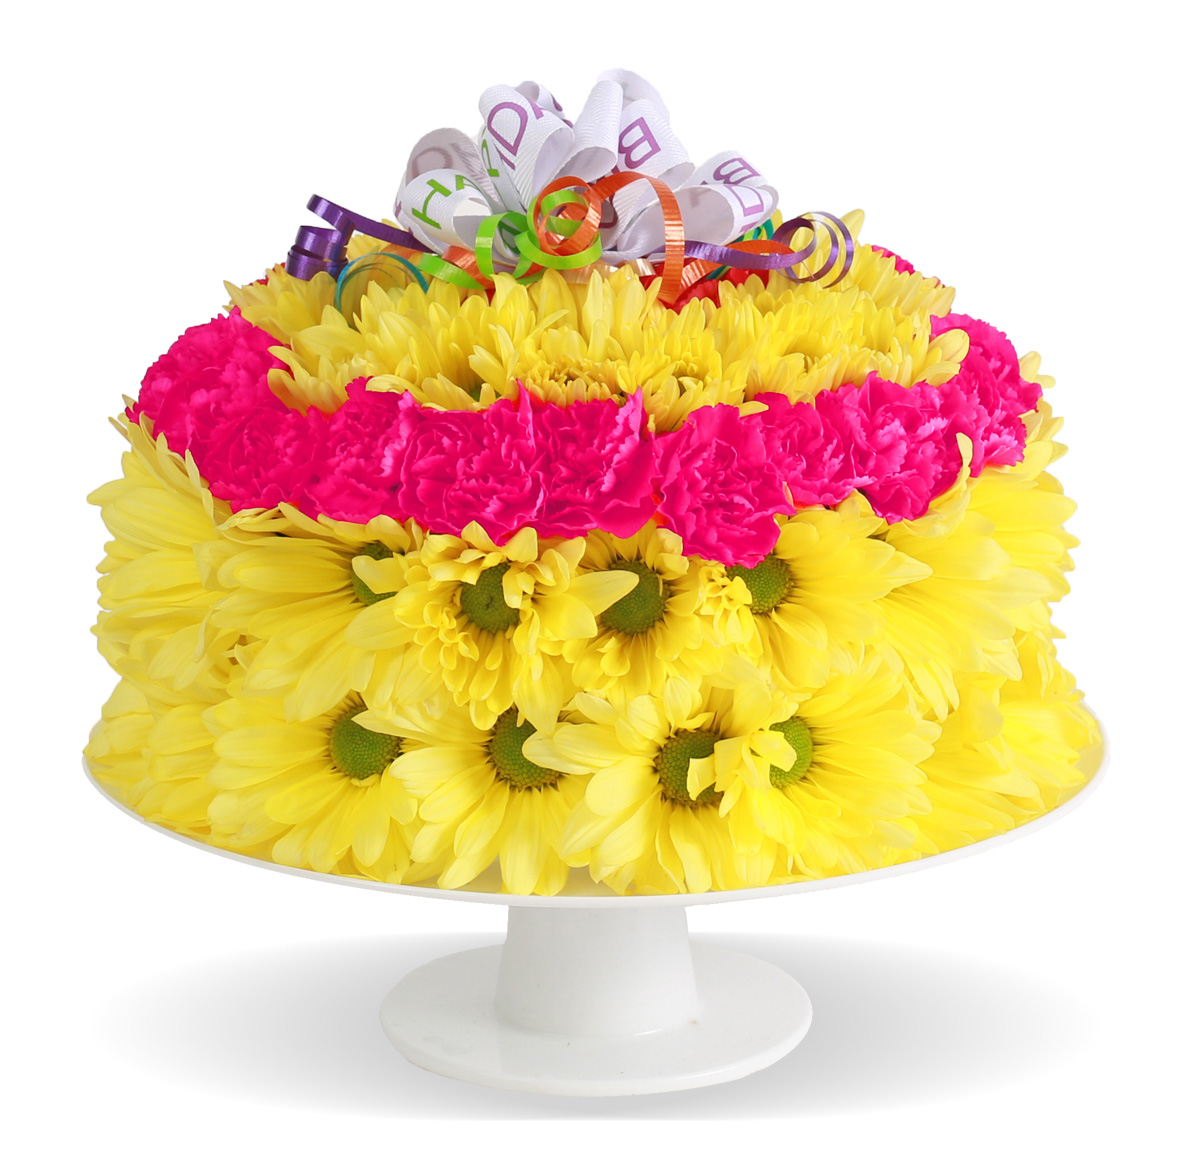 Birthday fresh flower birthday cake columbus oh florist fresh flower birthday cake same day delivery izmirmasajfo